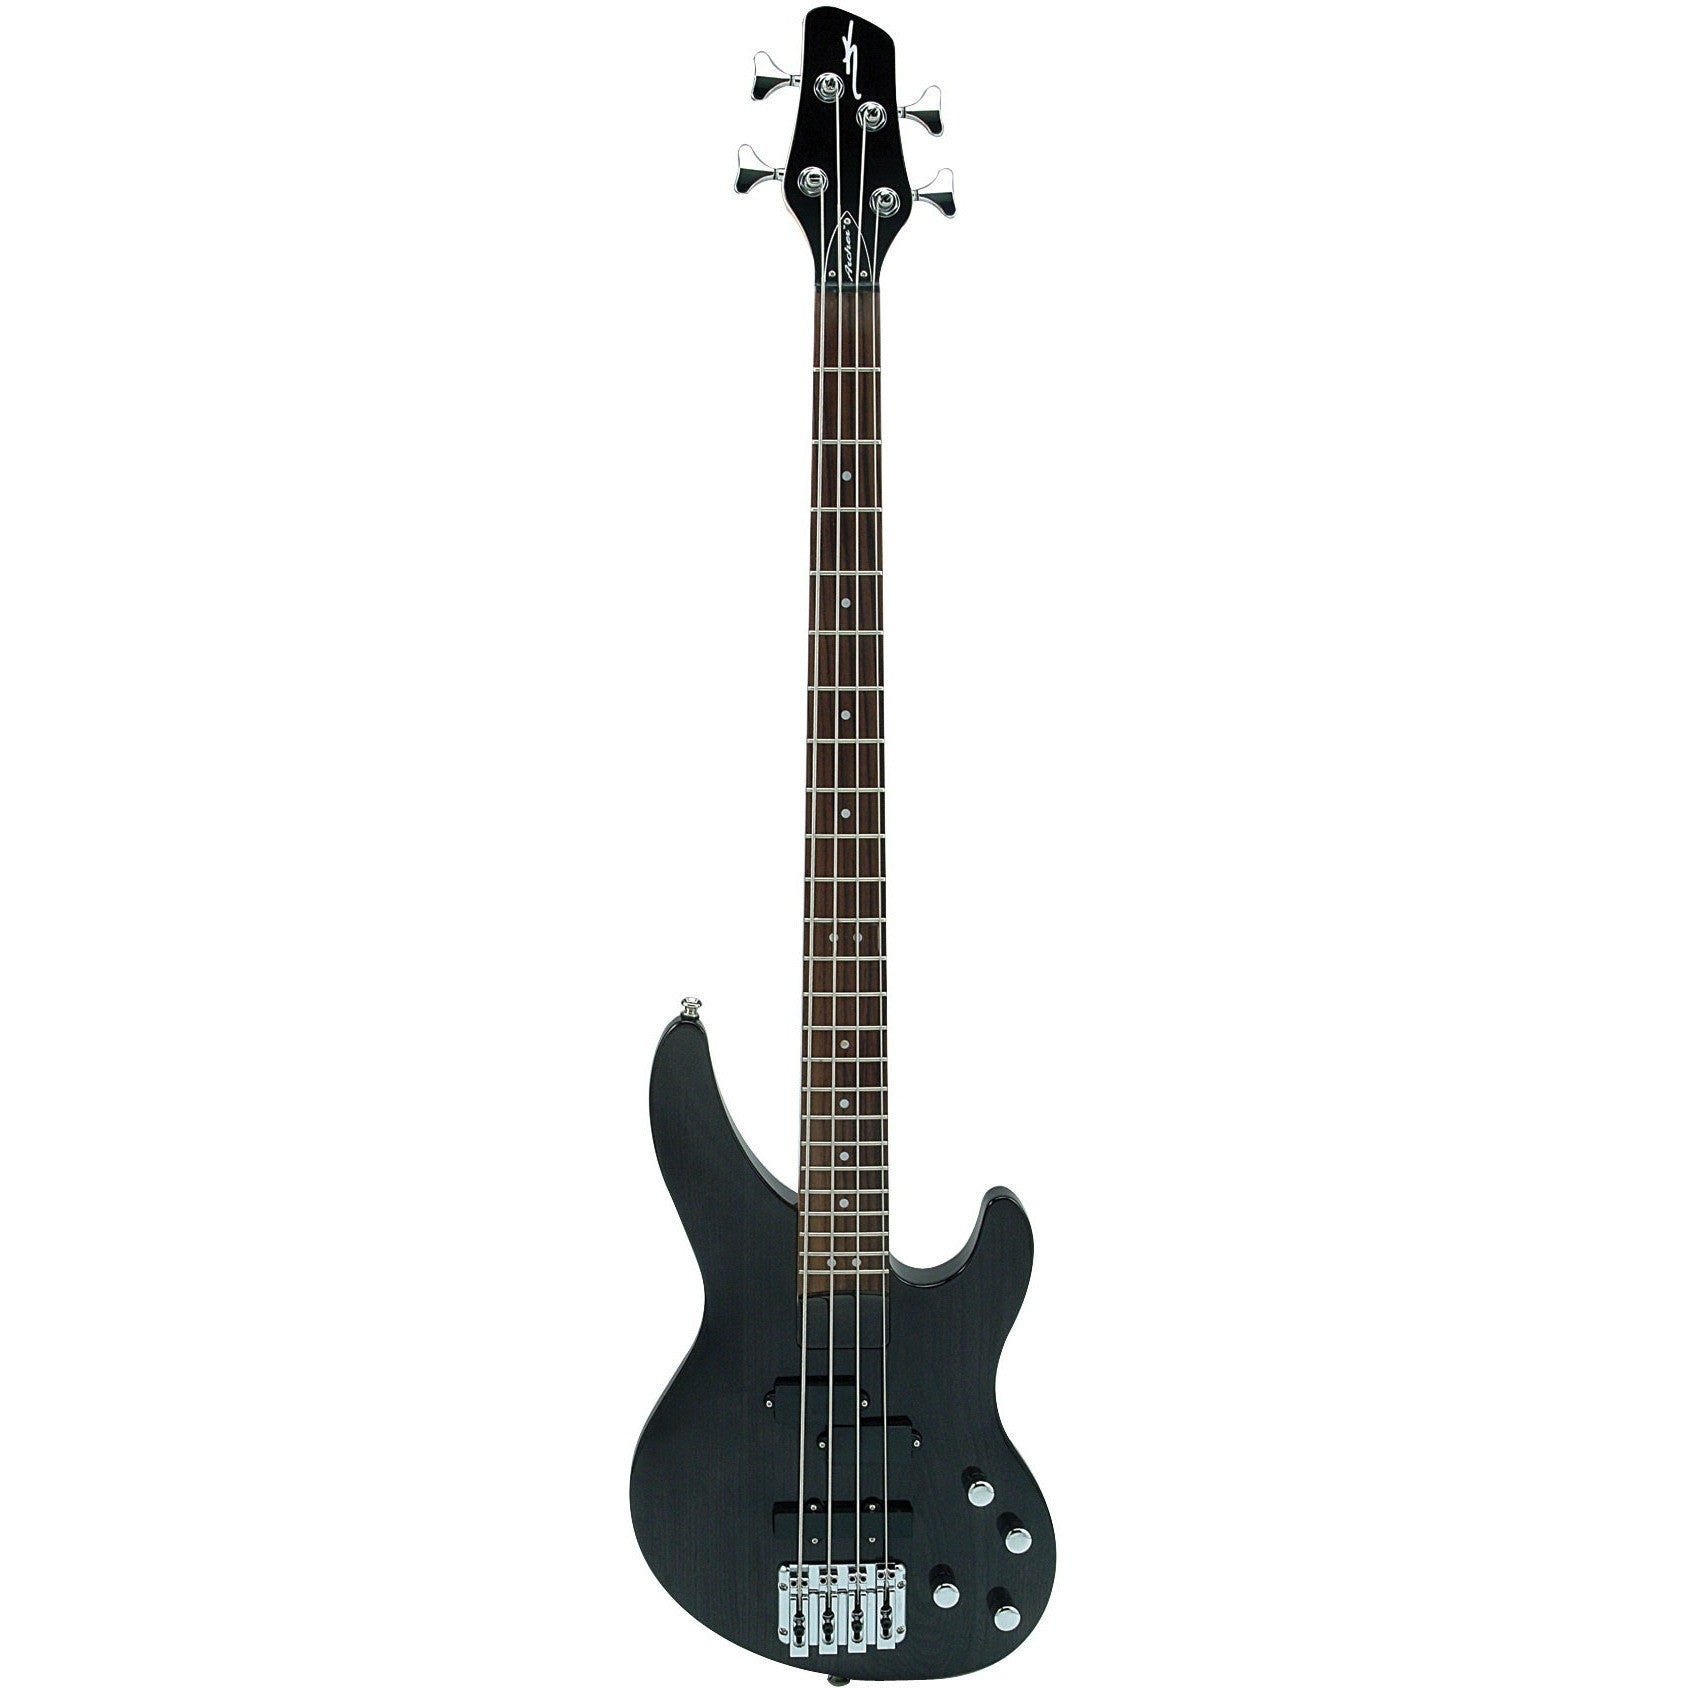 Archer K S3 Kasim Sulton Signature Electric Bass